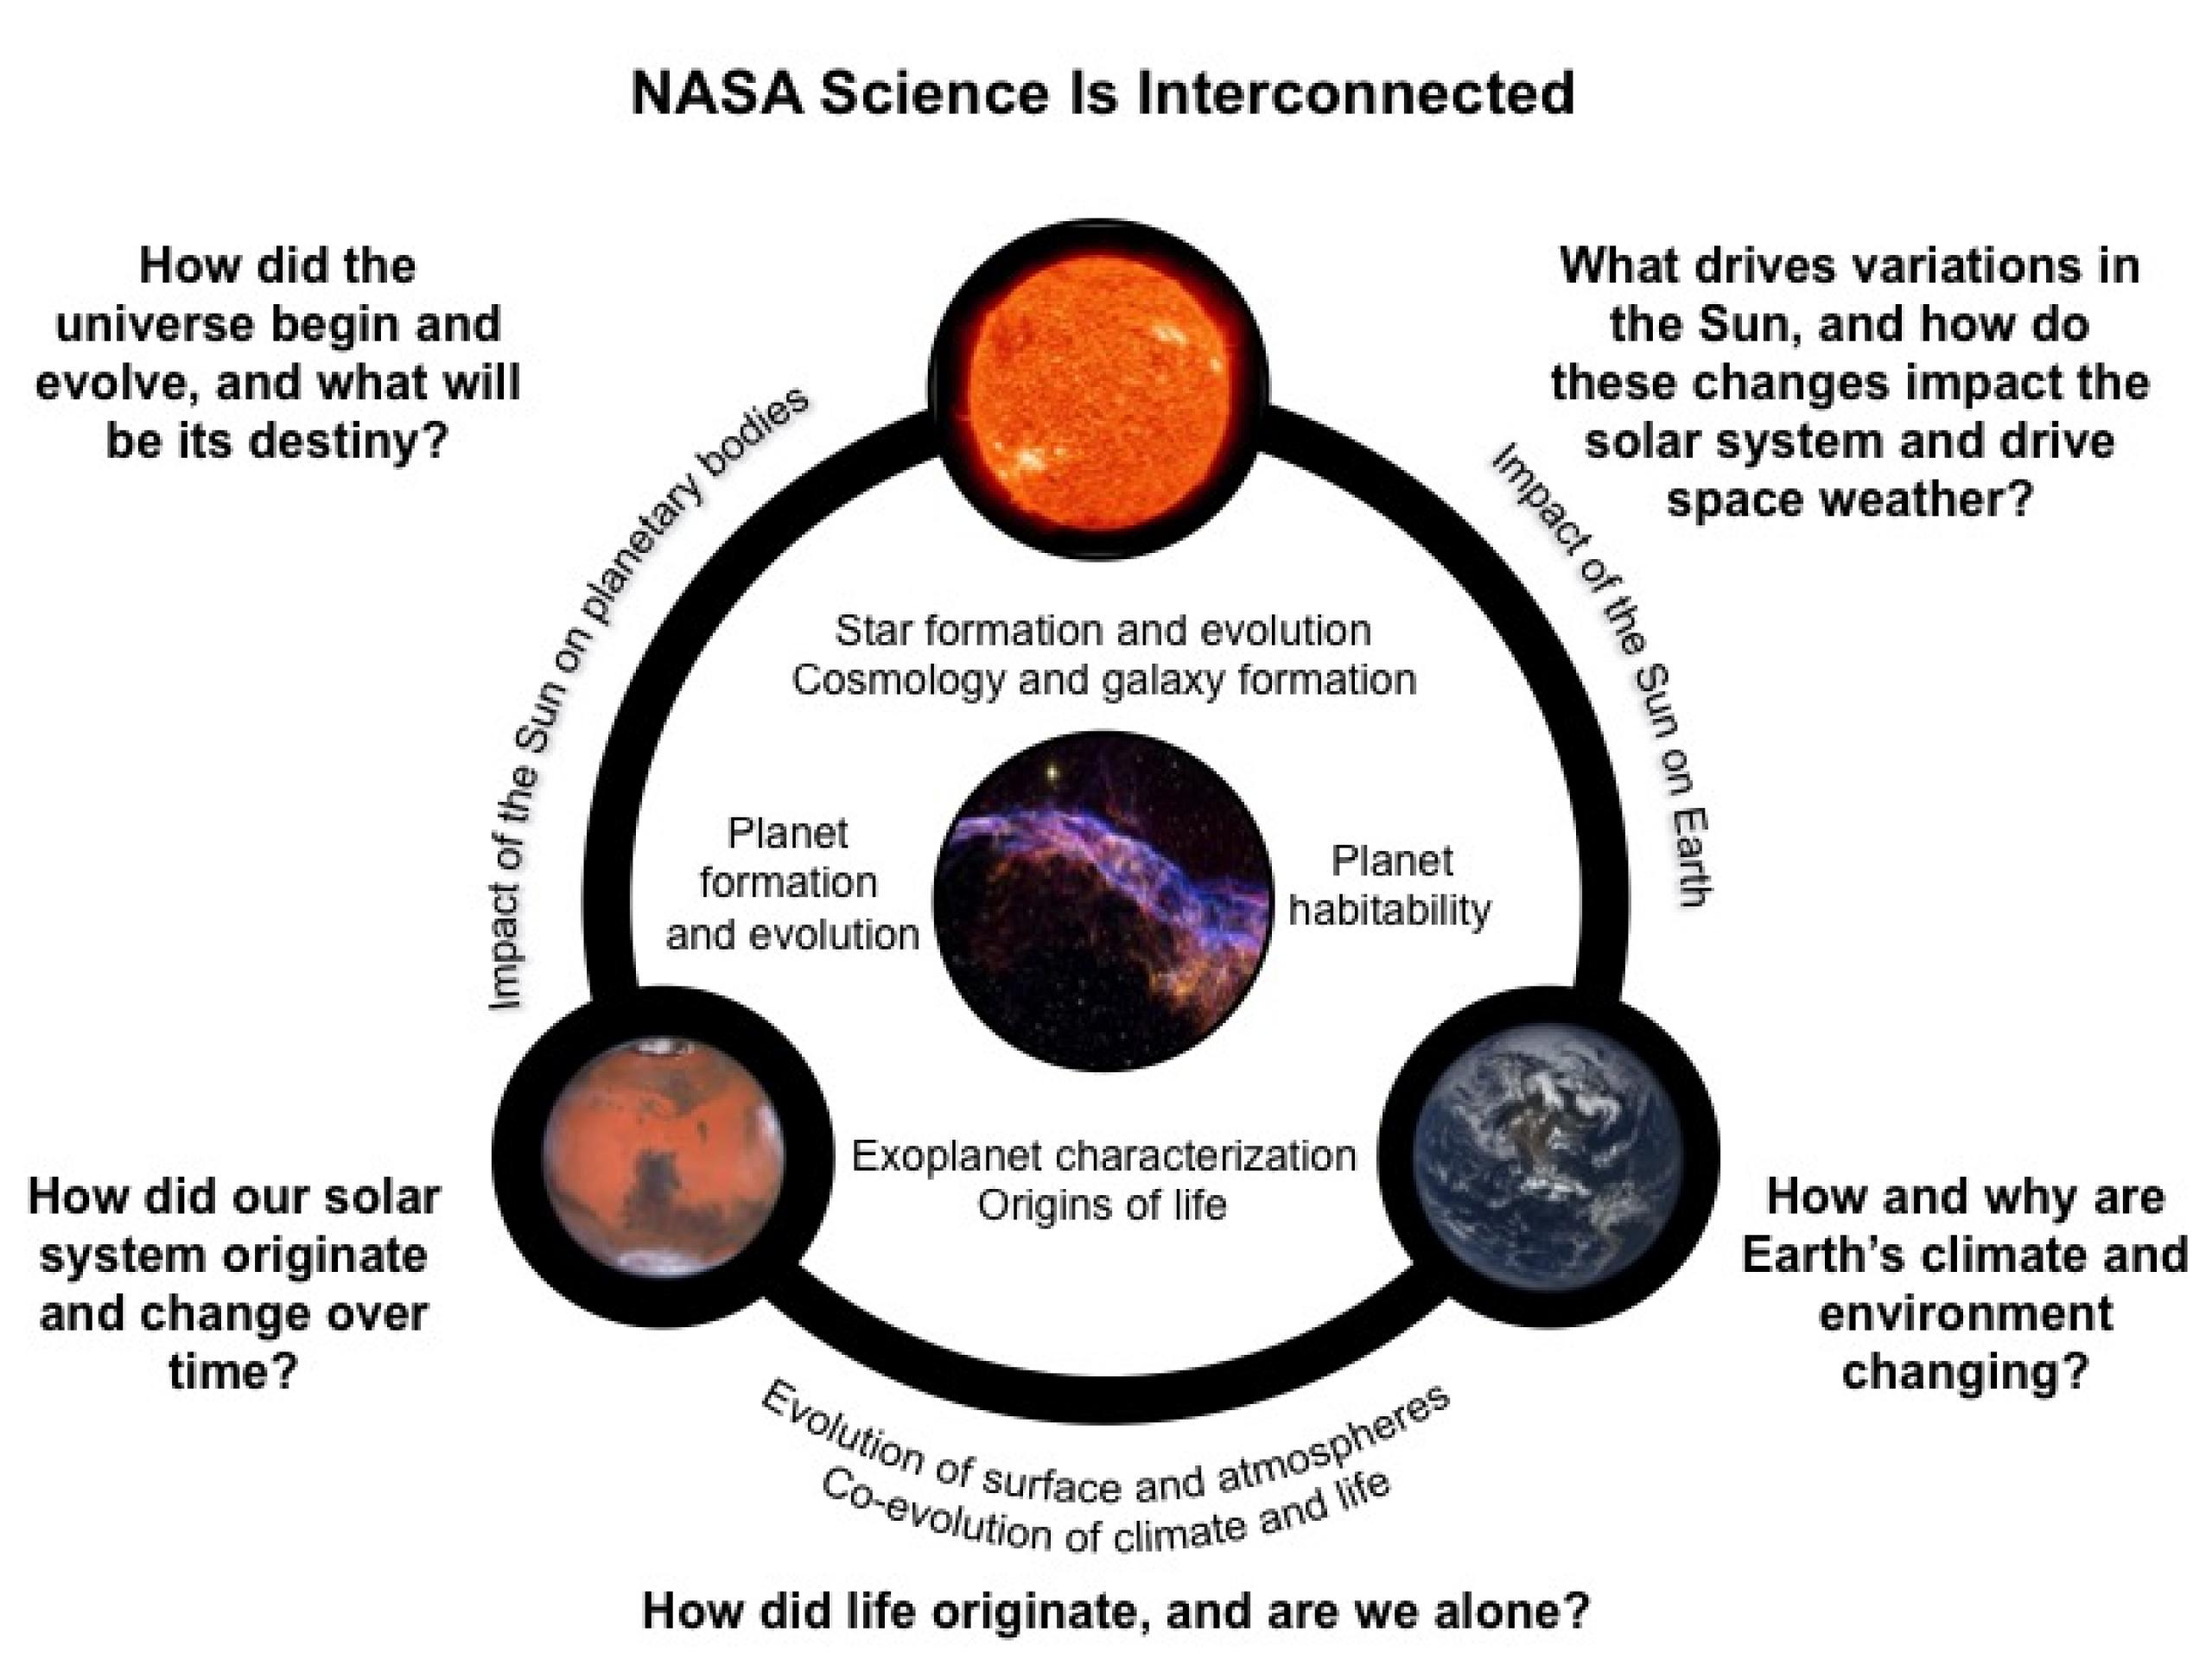 Chart illustrating how NASA Science is connected.